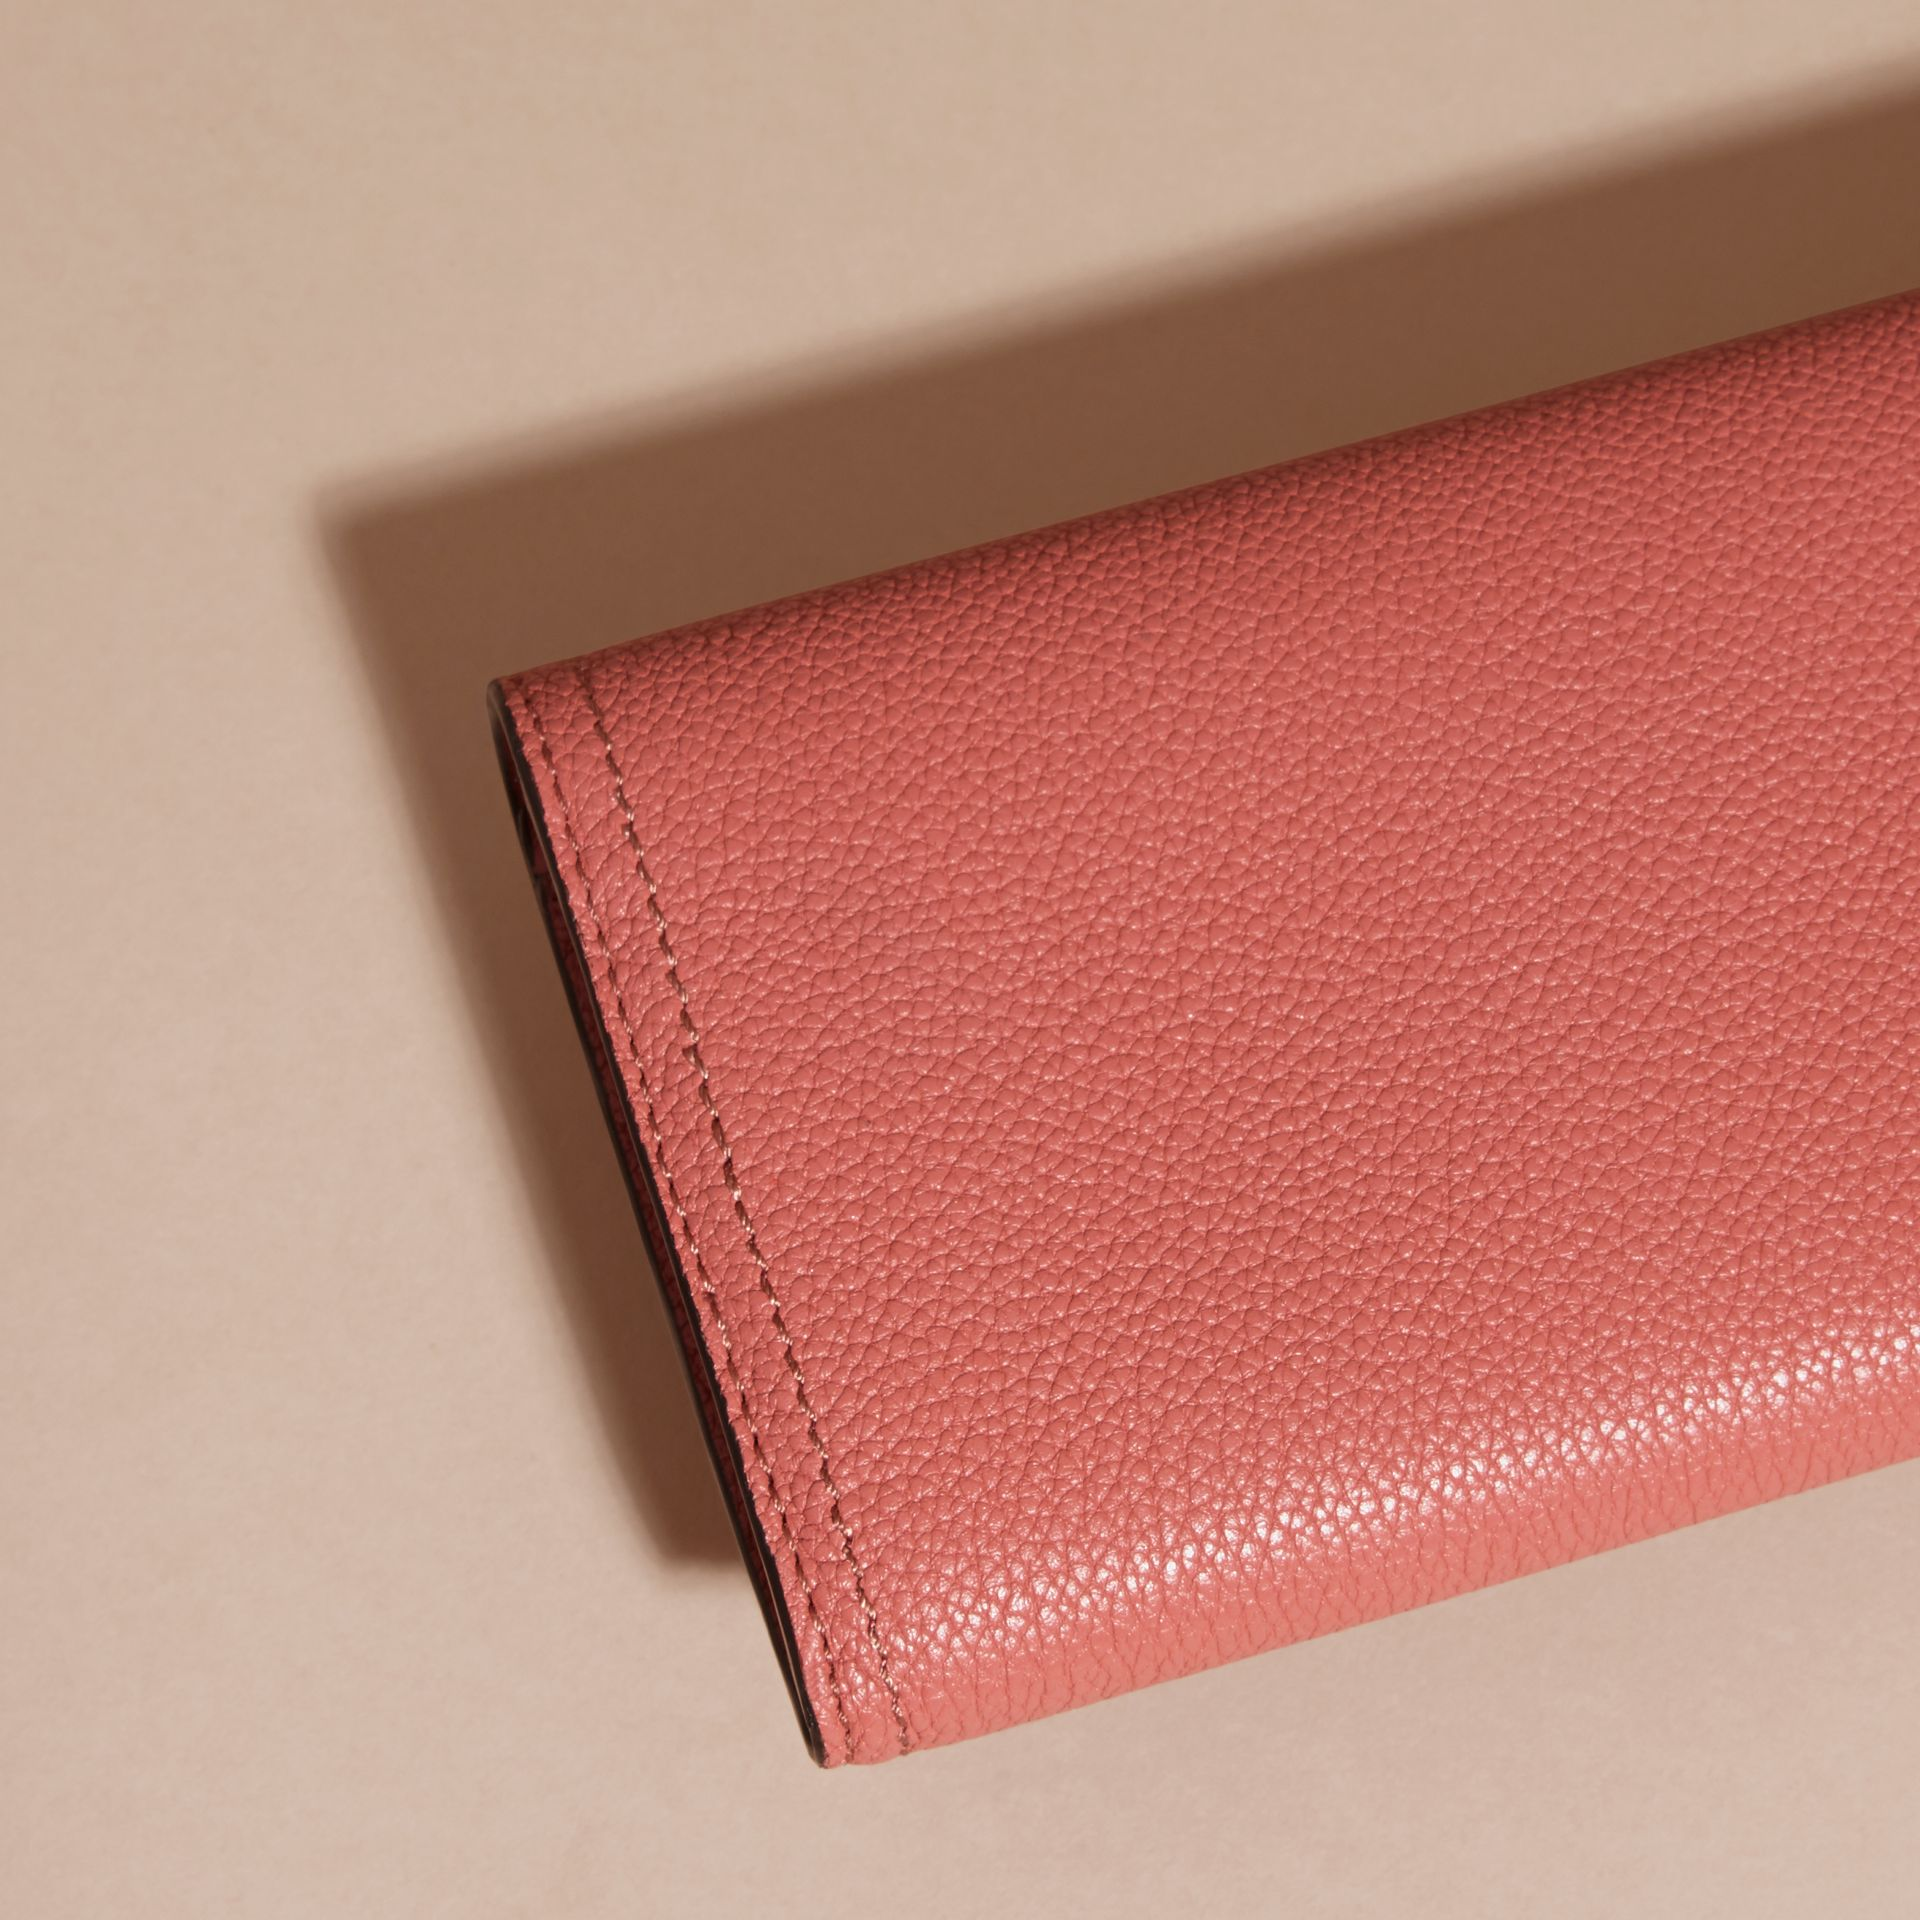 Copper pink Textured Leather Continental Wallet Copper Pink - gallery image 4